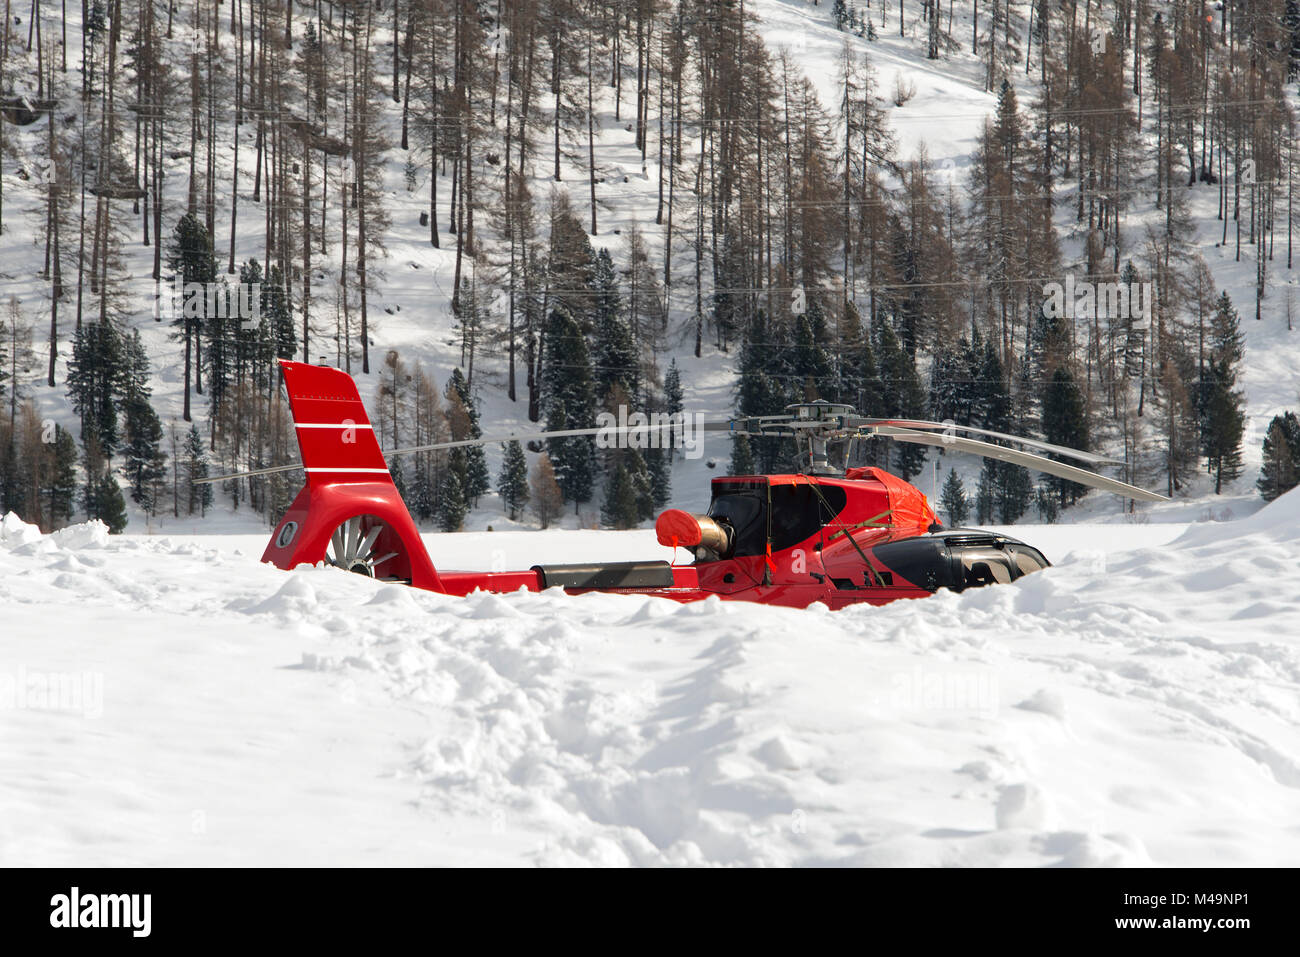 A red airport helicopter in the snow in the alps switzerland - Stock Image